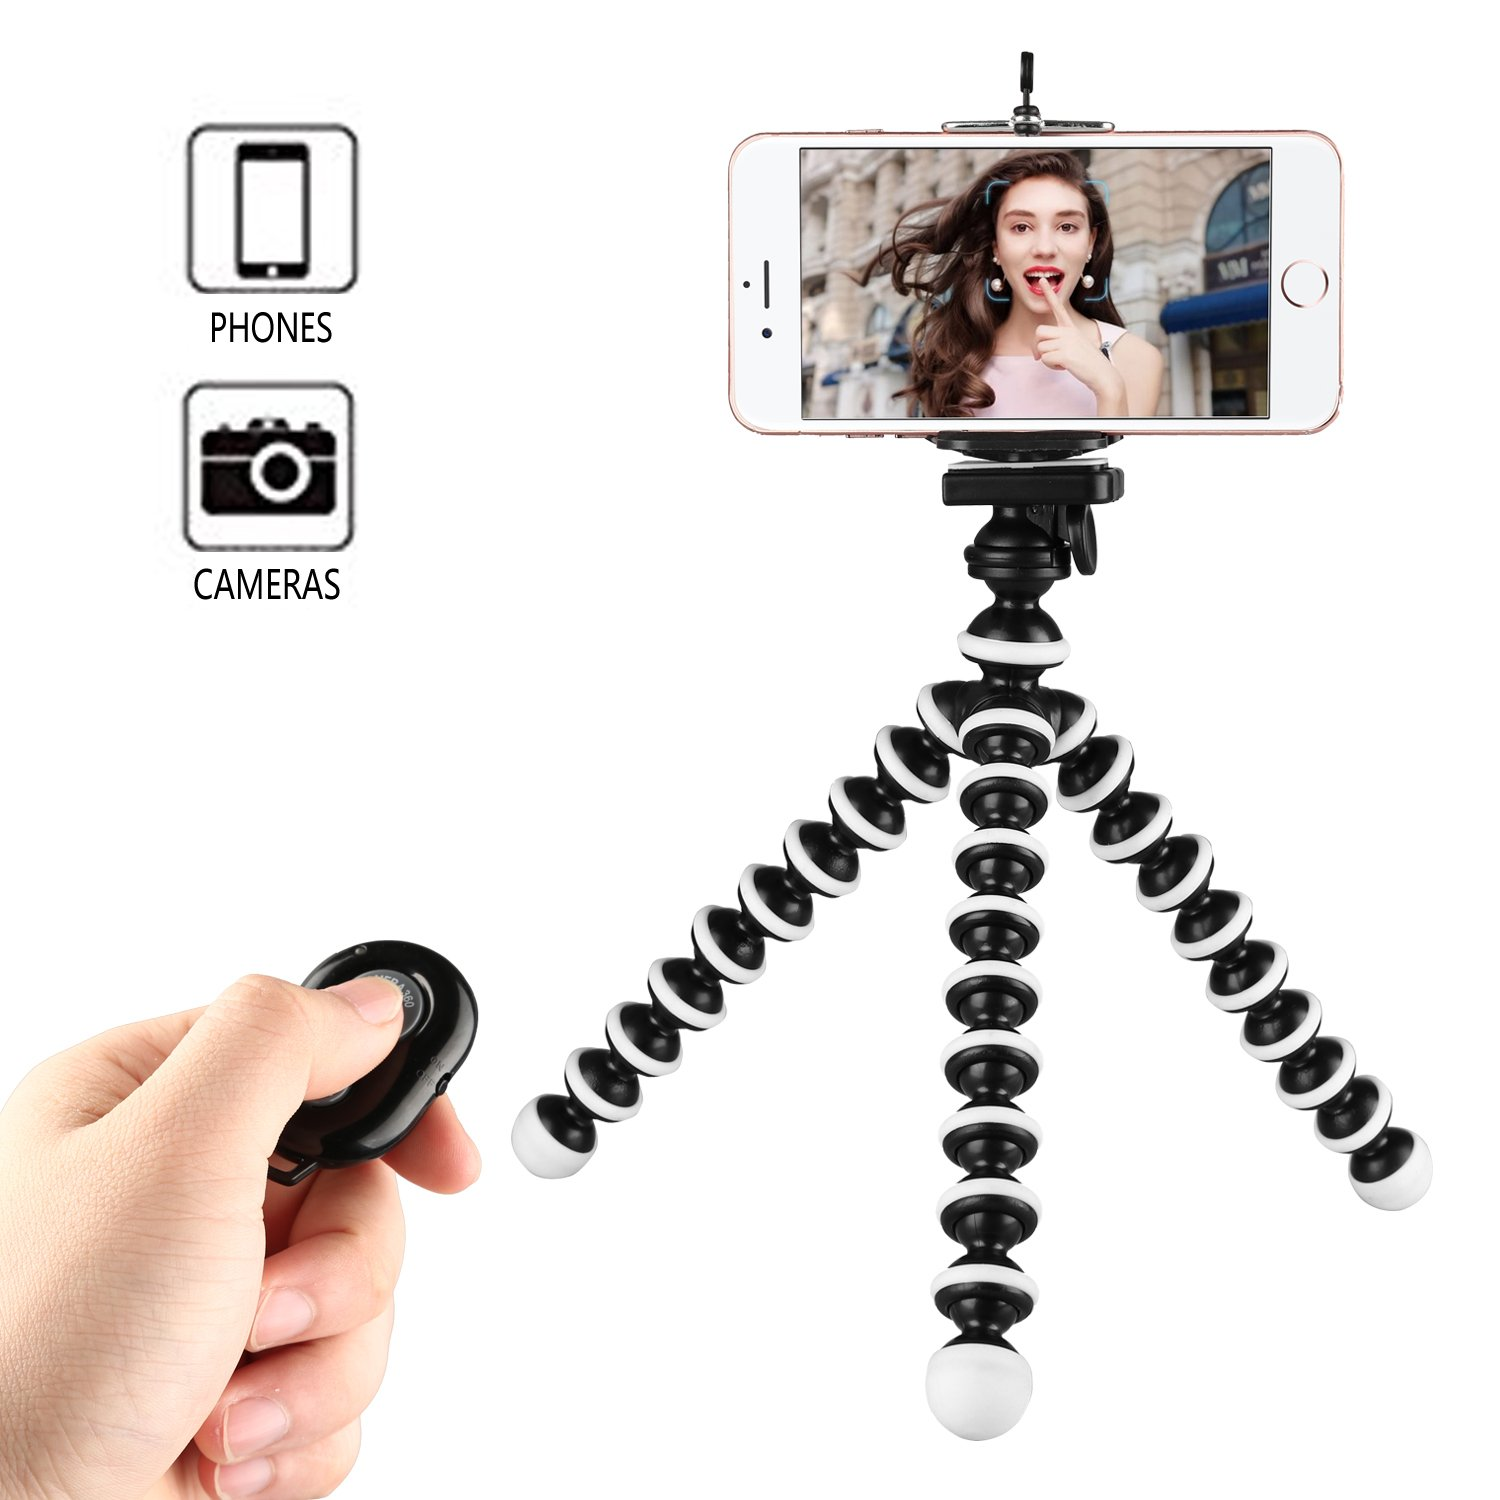 Kamisafe Mini Selfie Stick Phone Tripod Stand Holder with Universal Clip & Remote Control for Logitech Webcam C920 C922 C930e C930 C615 iPhone X 8/8s 7 7 Plus 6s Plus Samsung Galaxy S8 Plus S8 Edge S7